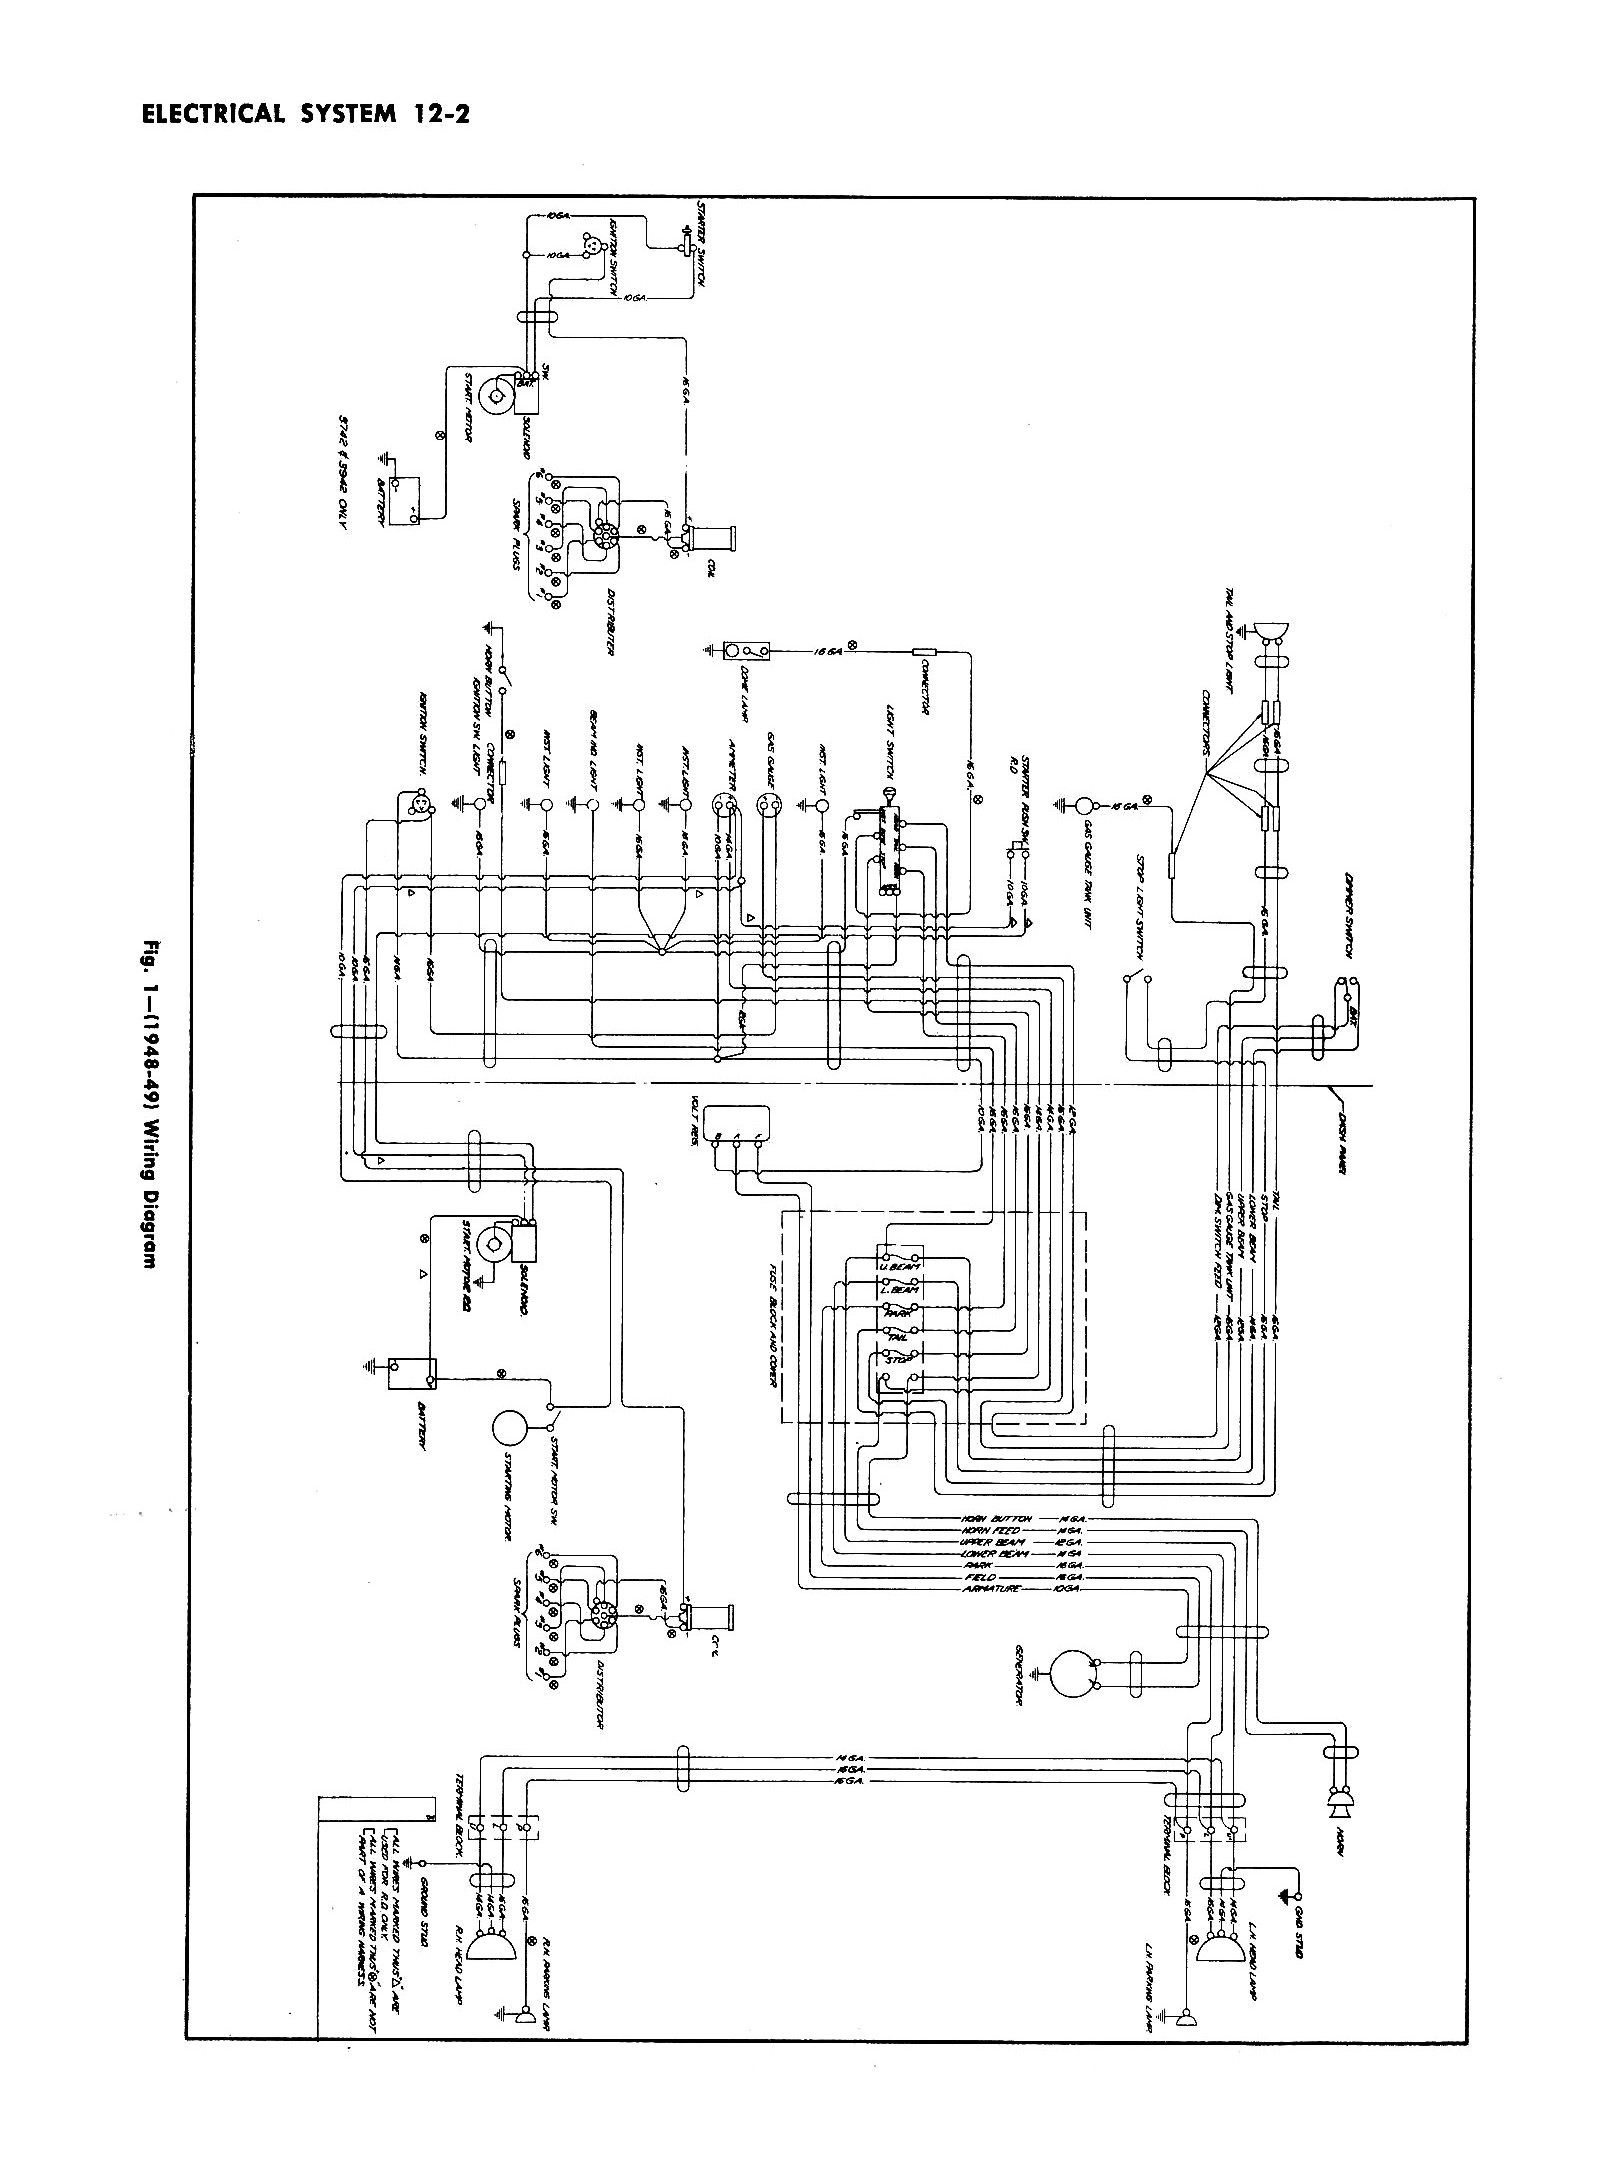 1950 dodge truck wiring diagram